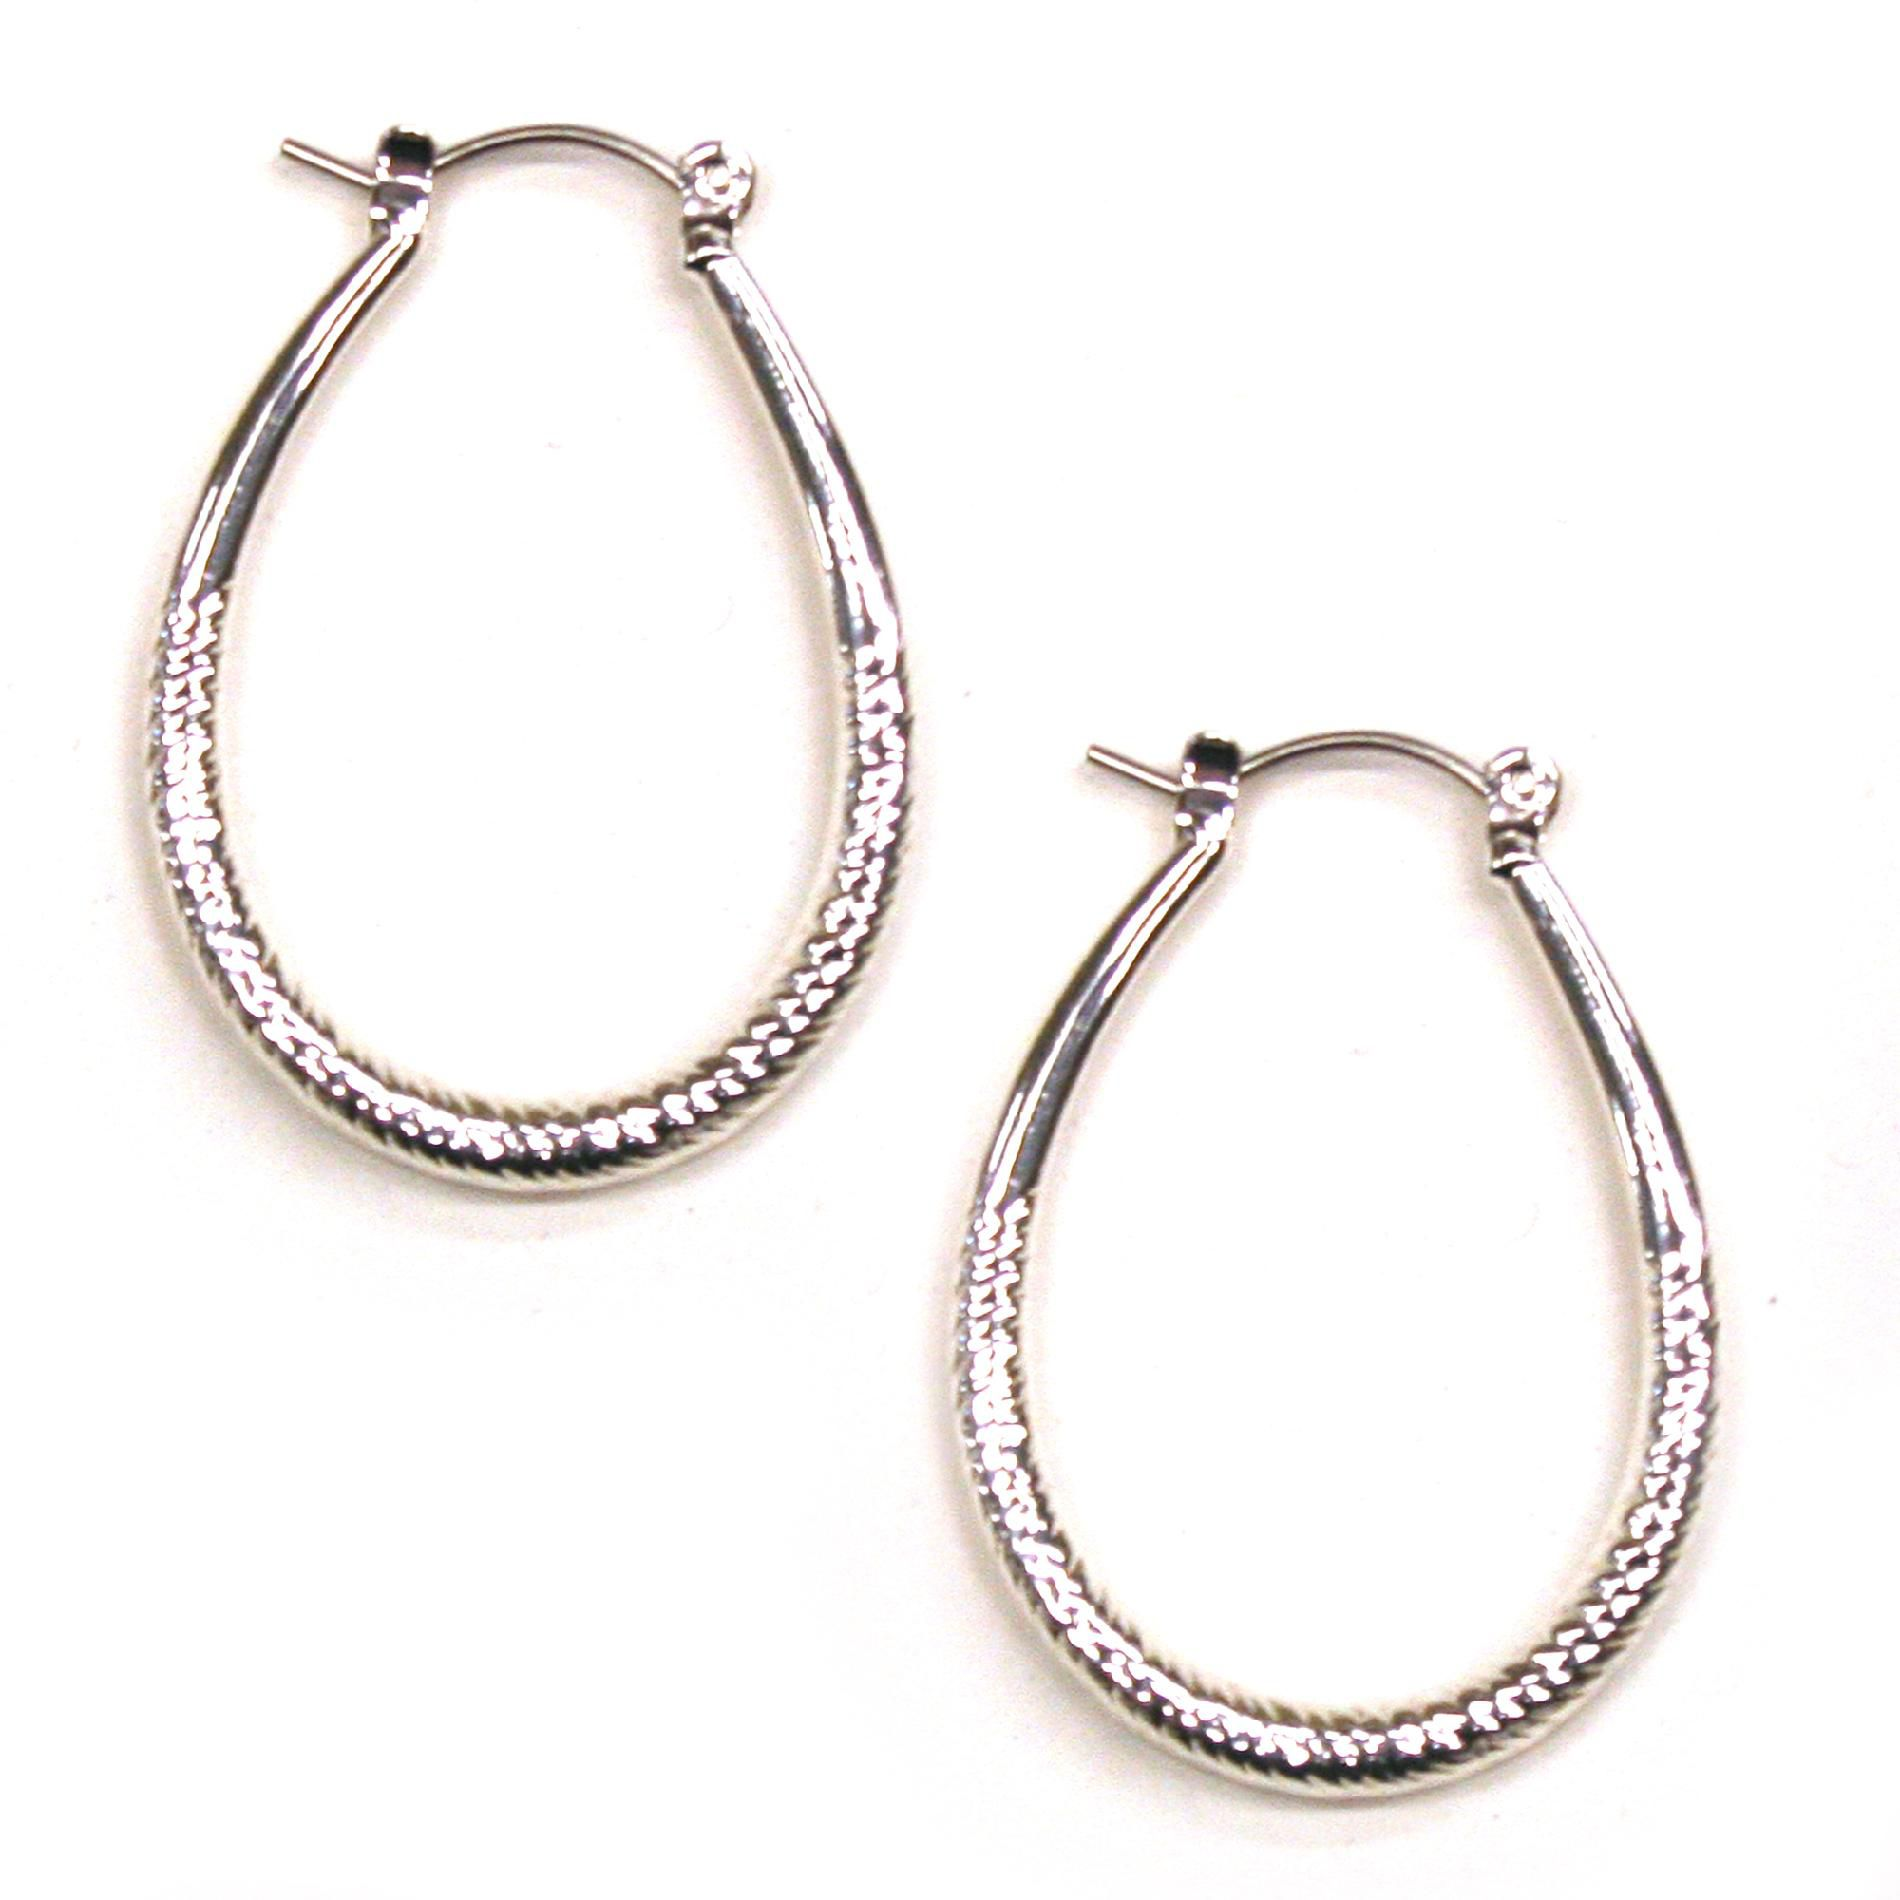 Shaped Hoop Earrings Textured Silver Metal